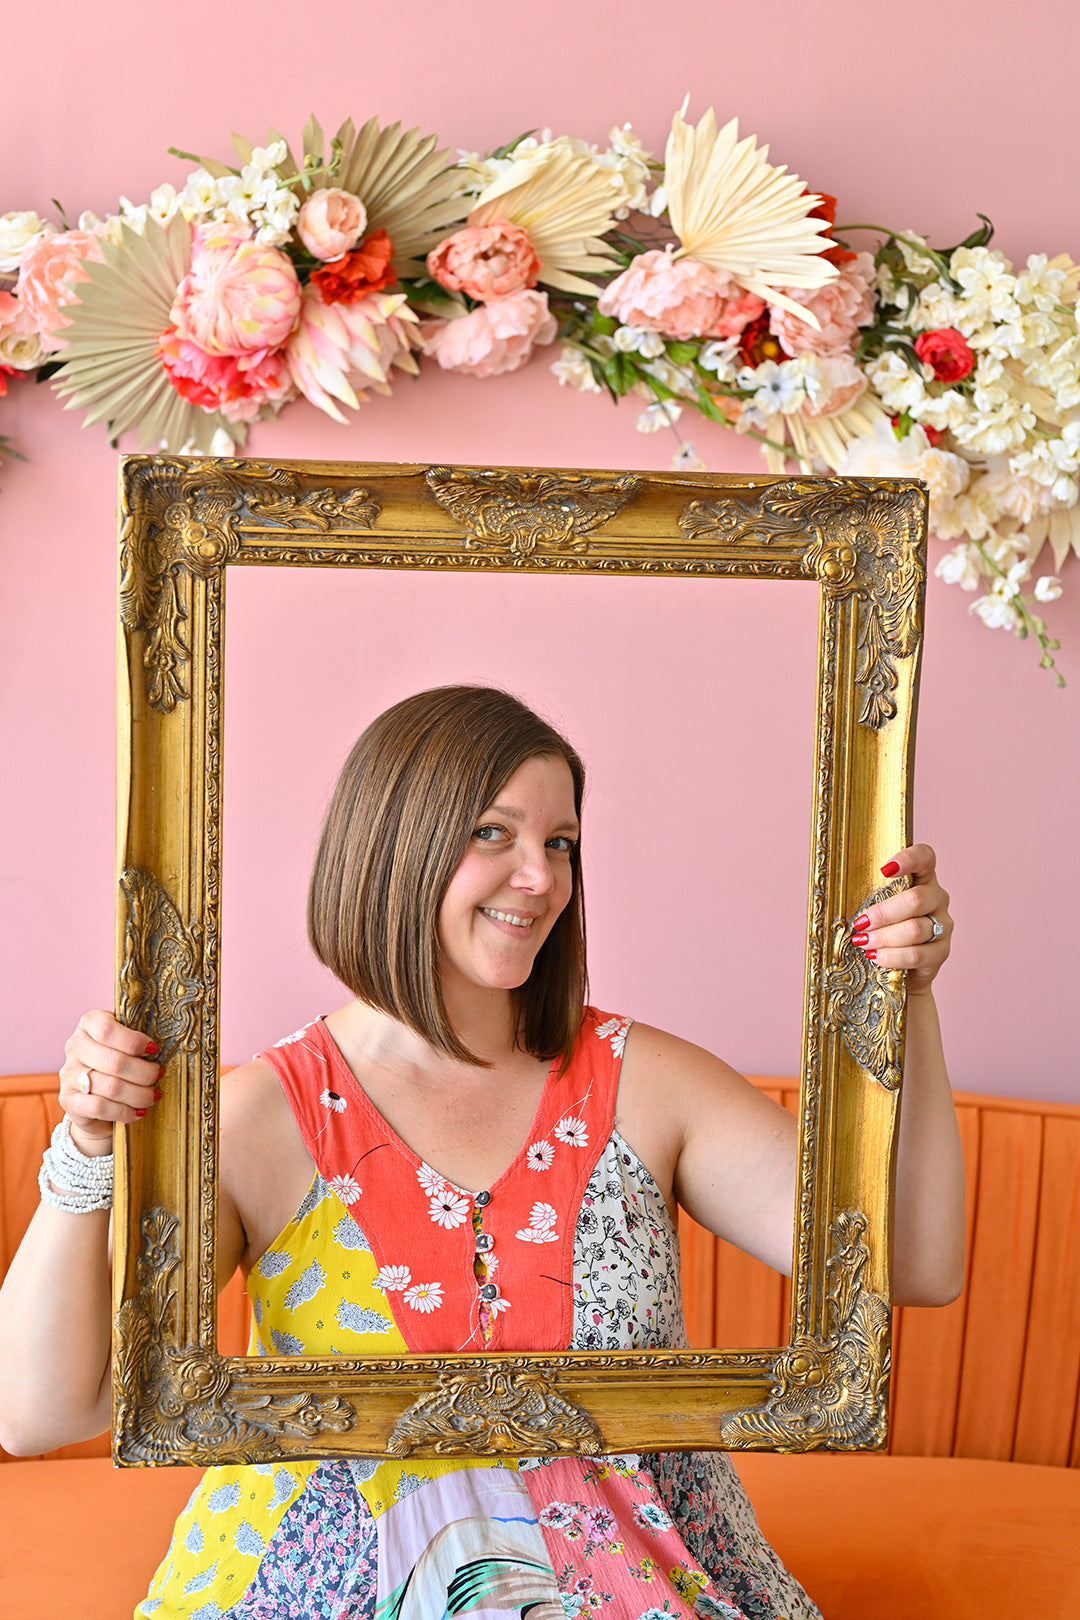 Kelly sits in a colorful dress holding a gold picture frame around her face. There is floral decor above her.